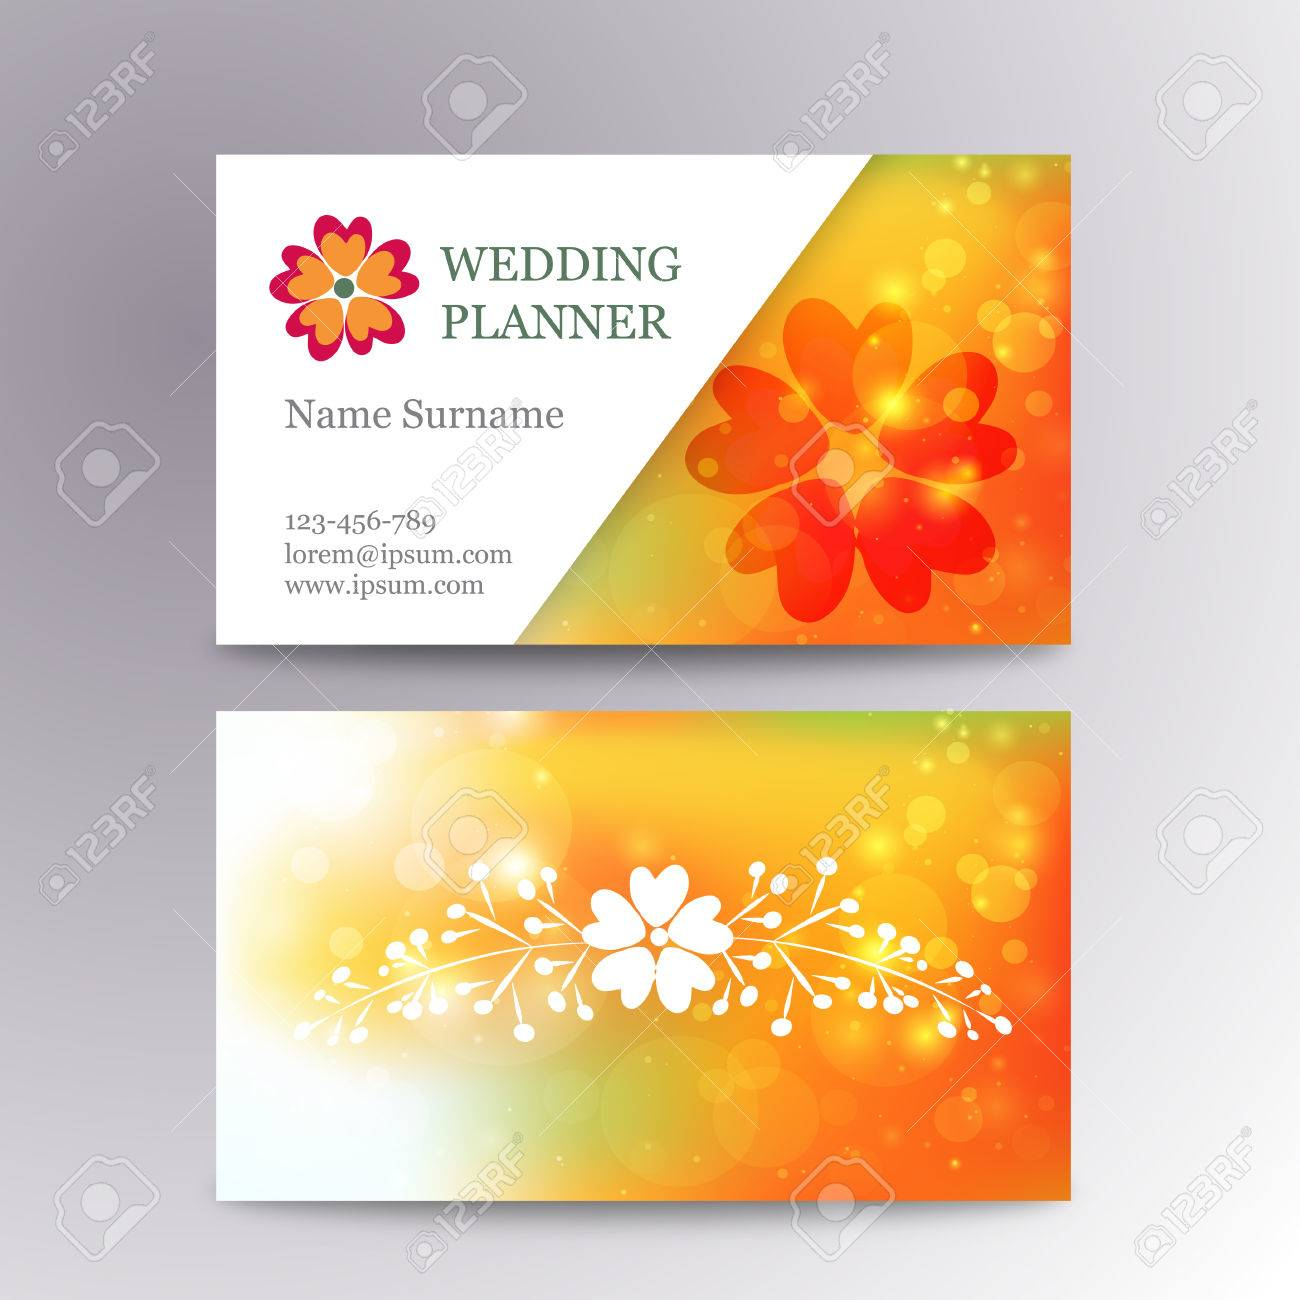 Blurred Business Card Template With Flower. Suitable For Wedding ...